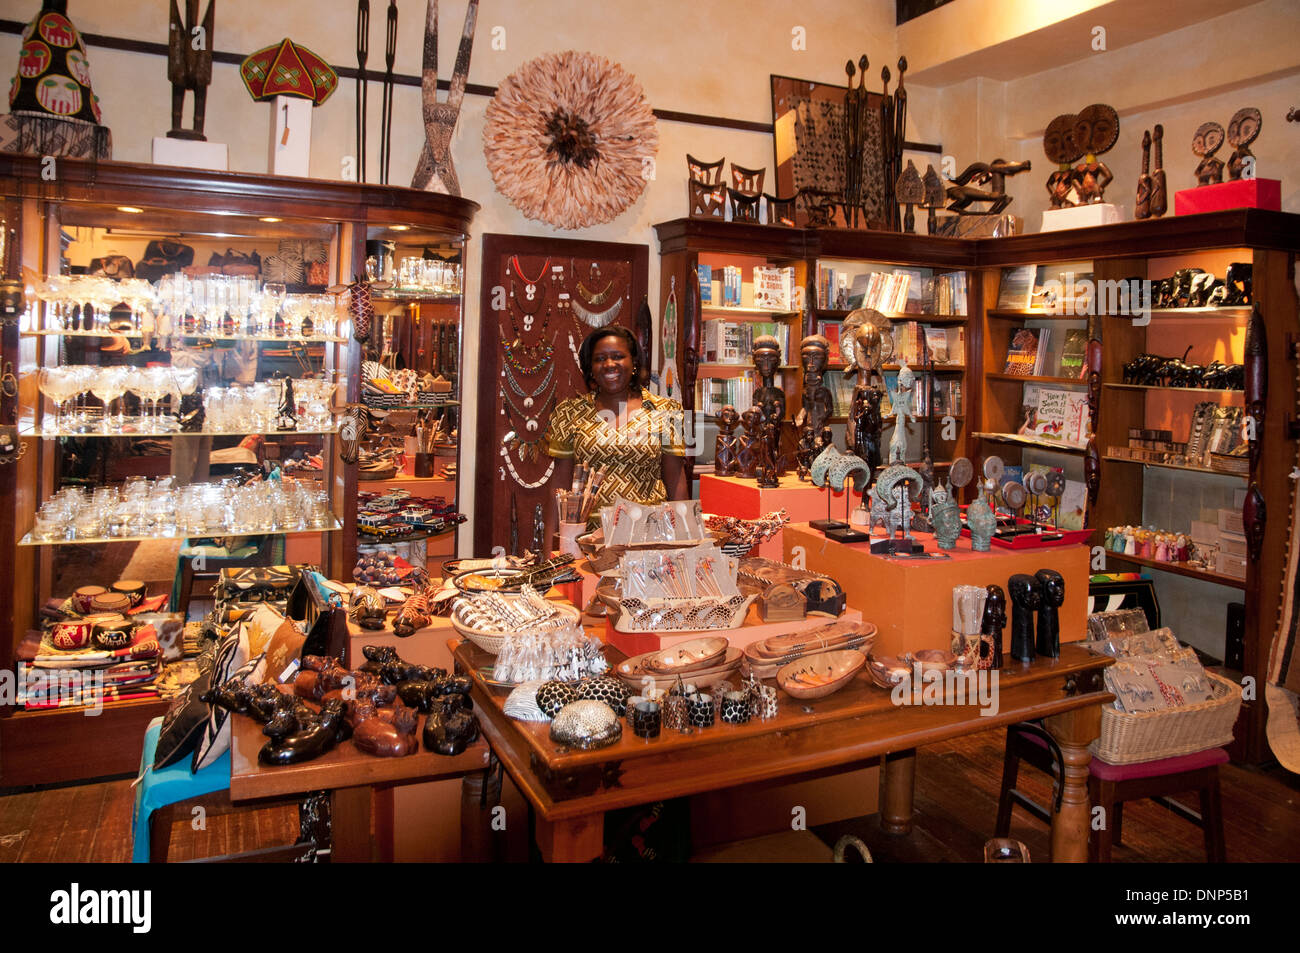 Nairobi Serena Hotel shop or boutique with local souvenirs on sale in Nairobi Kenya - Stock Image